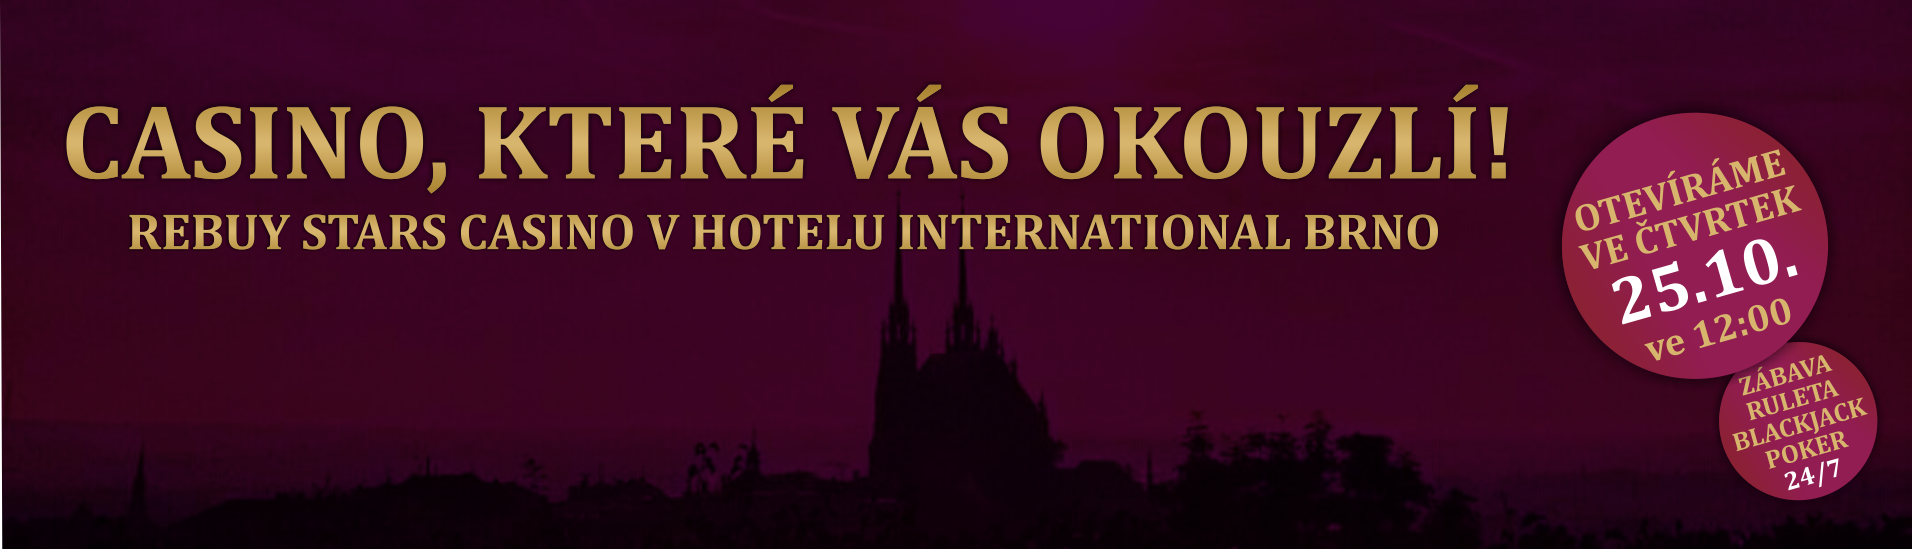 Rebuy Stars Casino - Hotel International Brno / open 25/10